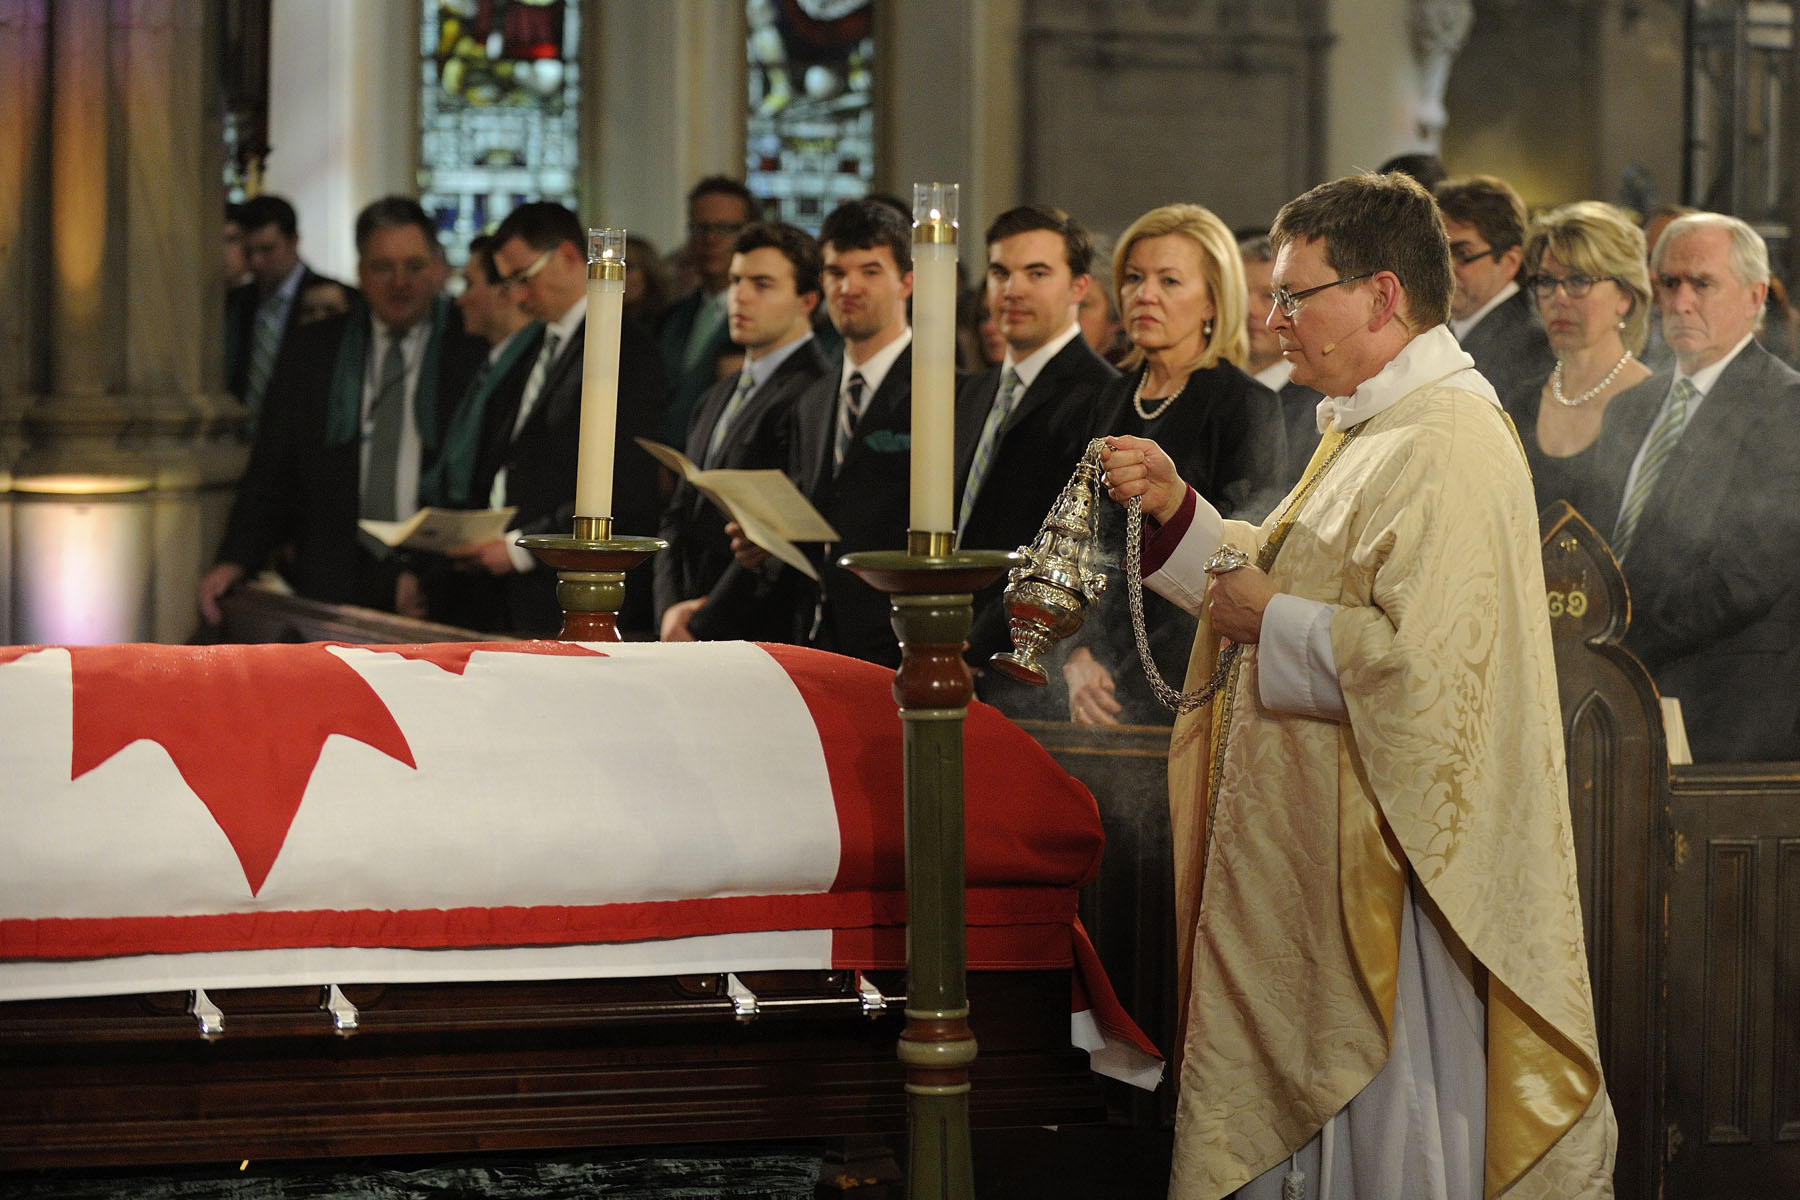 The ceremony took place at St. James Cathedral, in Toronto.